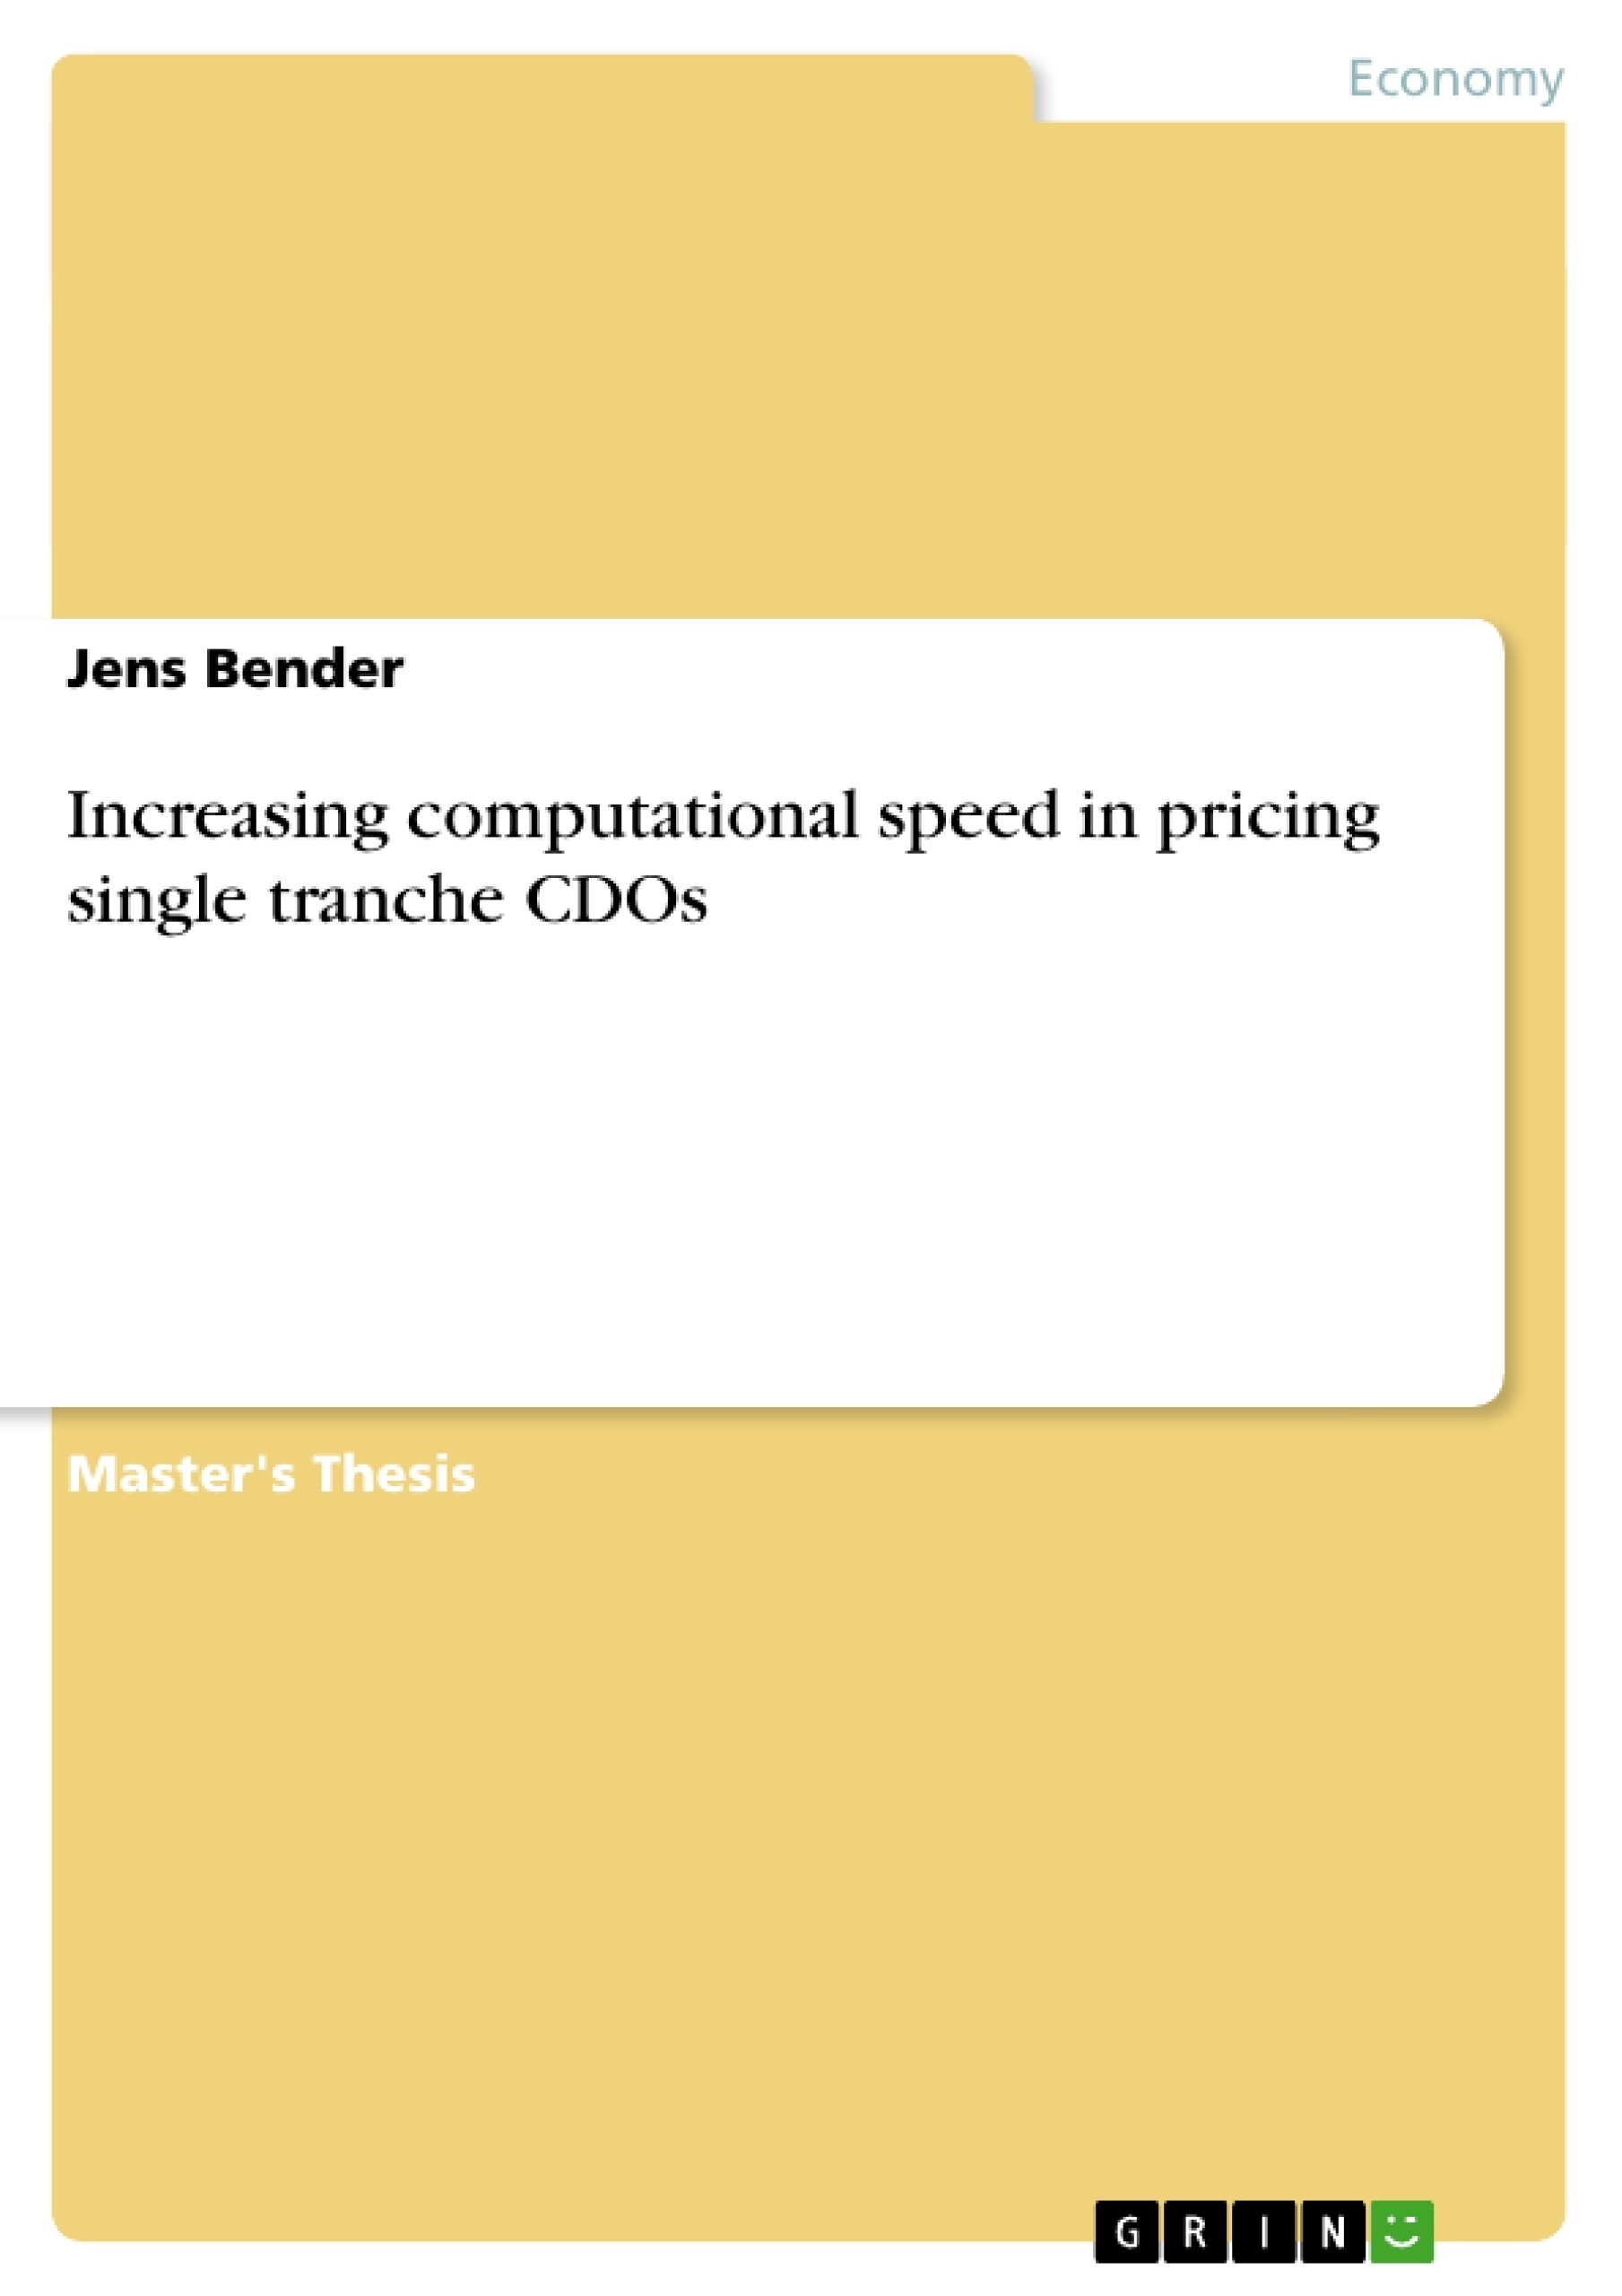 Title: Increasing computational speed in pricing single tranche CDOs